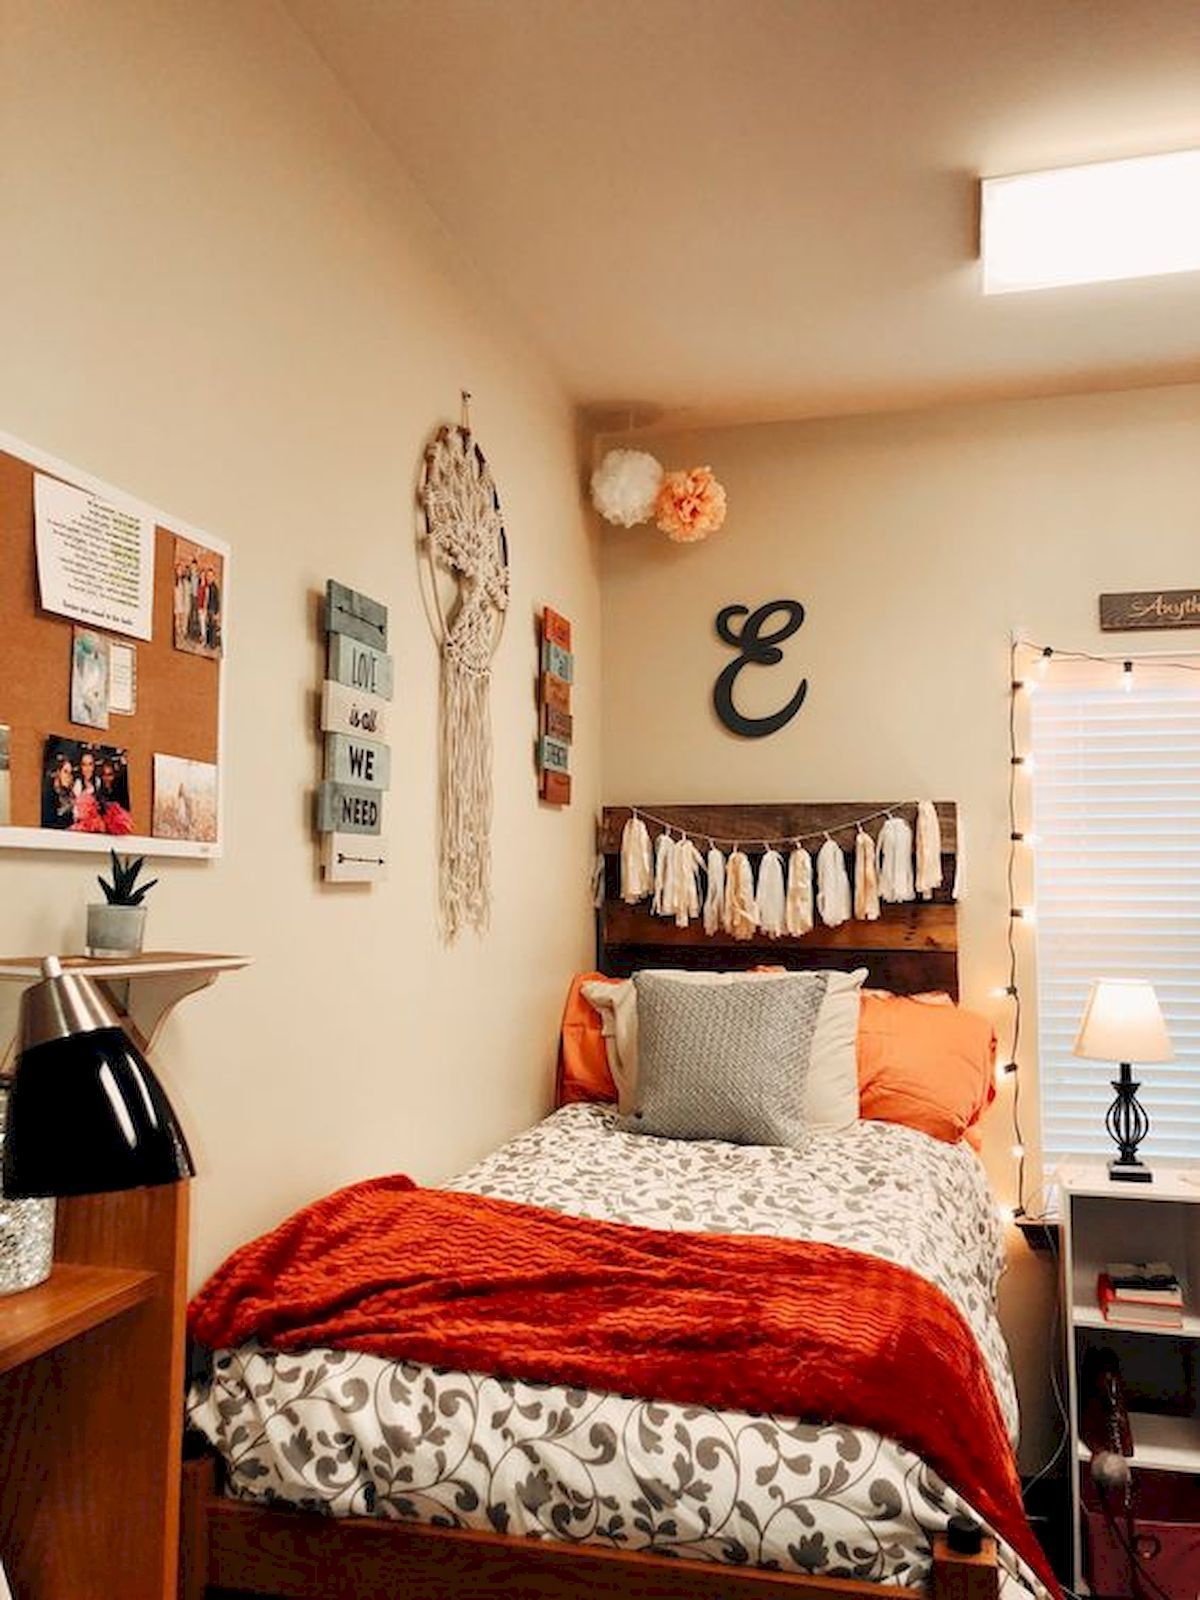 More information also stylish cool dorm rooms style decor ideas in room rh pinterest